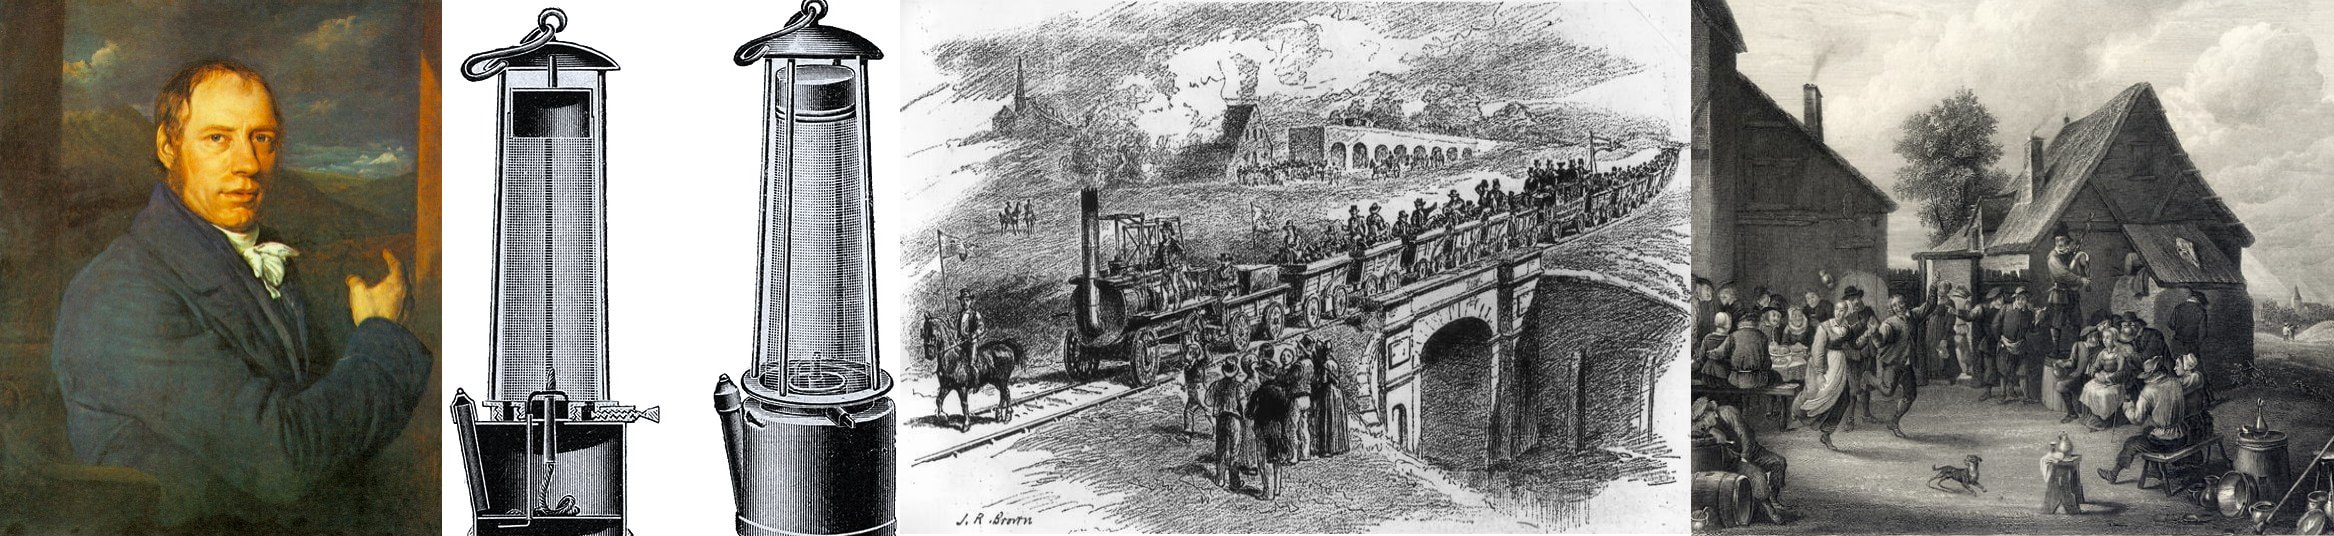 Richard Trevithick, Davy lamp, Stockton & Darlington railway and marriage